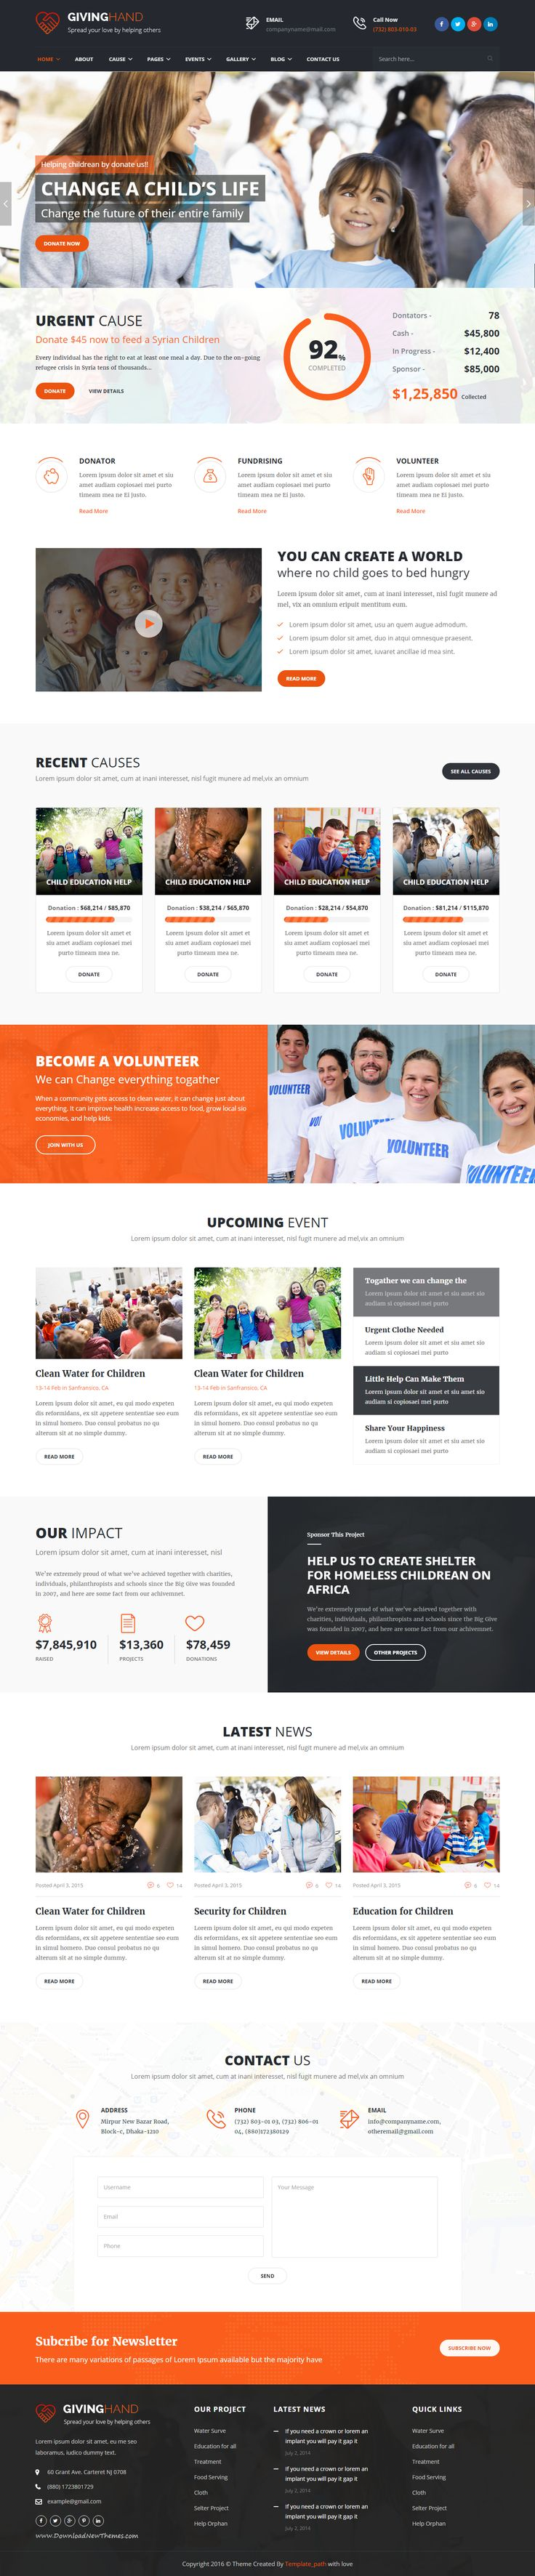 Giving Hand is a HTML template is created for non-profit websites, like governmental social program websites, NGO, Donation and fundraising #websites, etc. Giving Hand is a #charity #template, as well as a non profit theme for any social organizations, funds and donation campaigns.